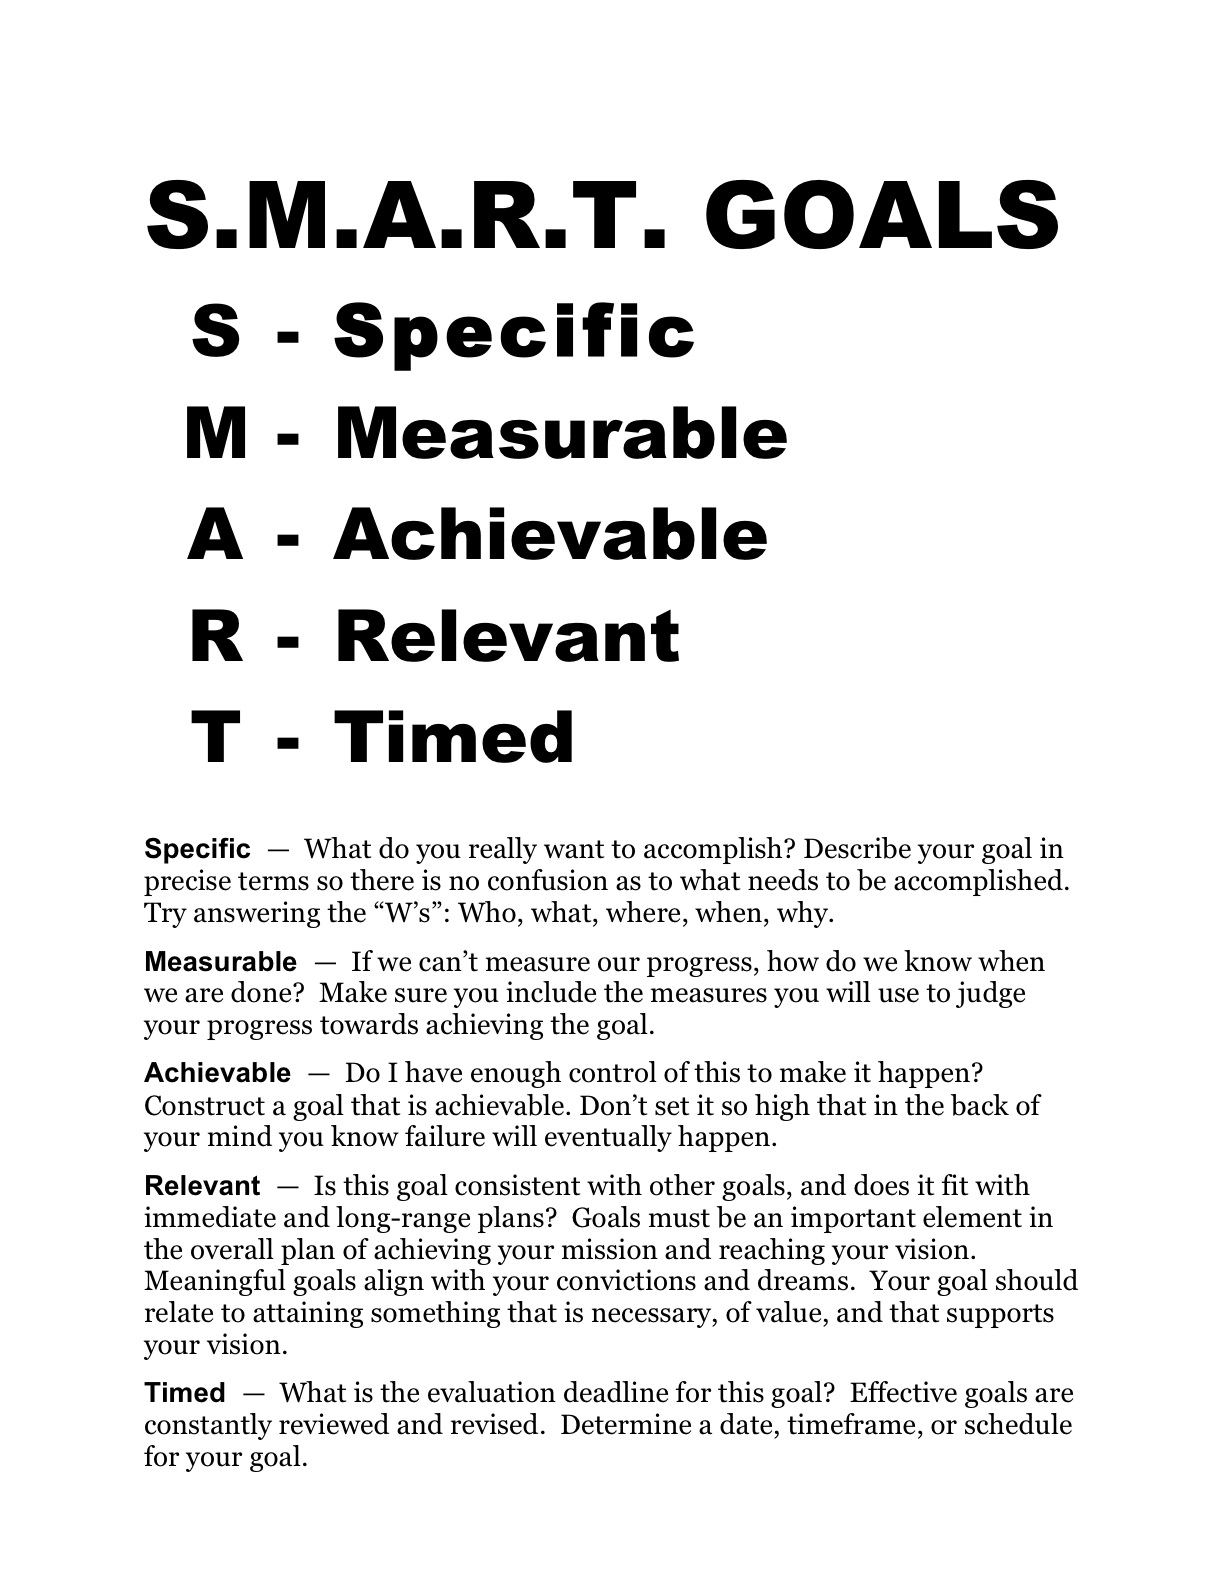 Smart Goals Worksheet Template | Professional Cover Letter Example